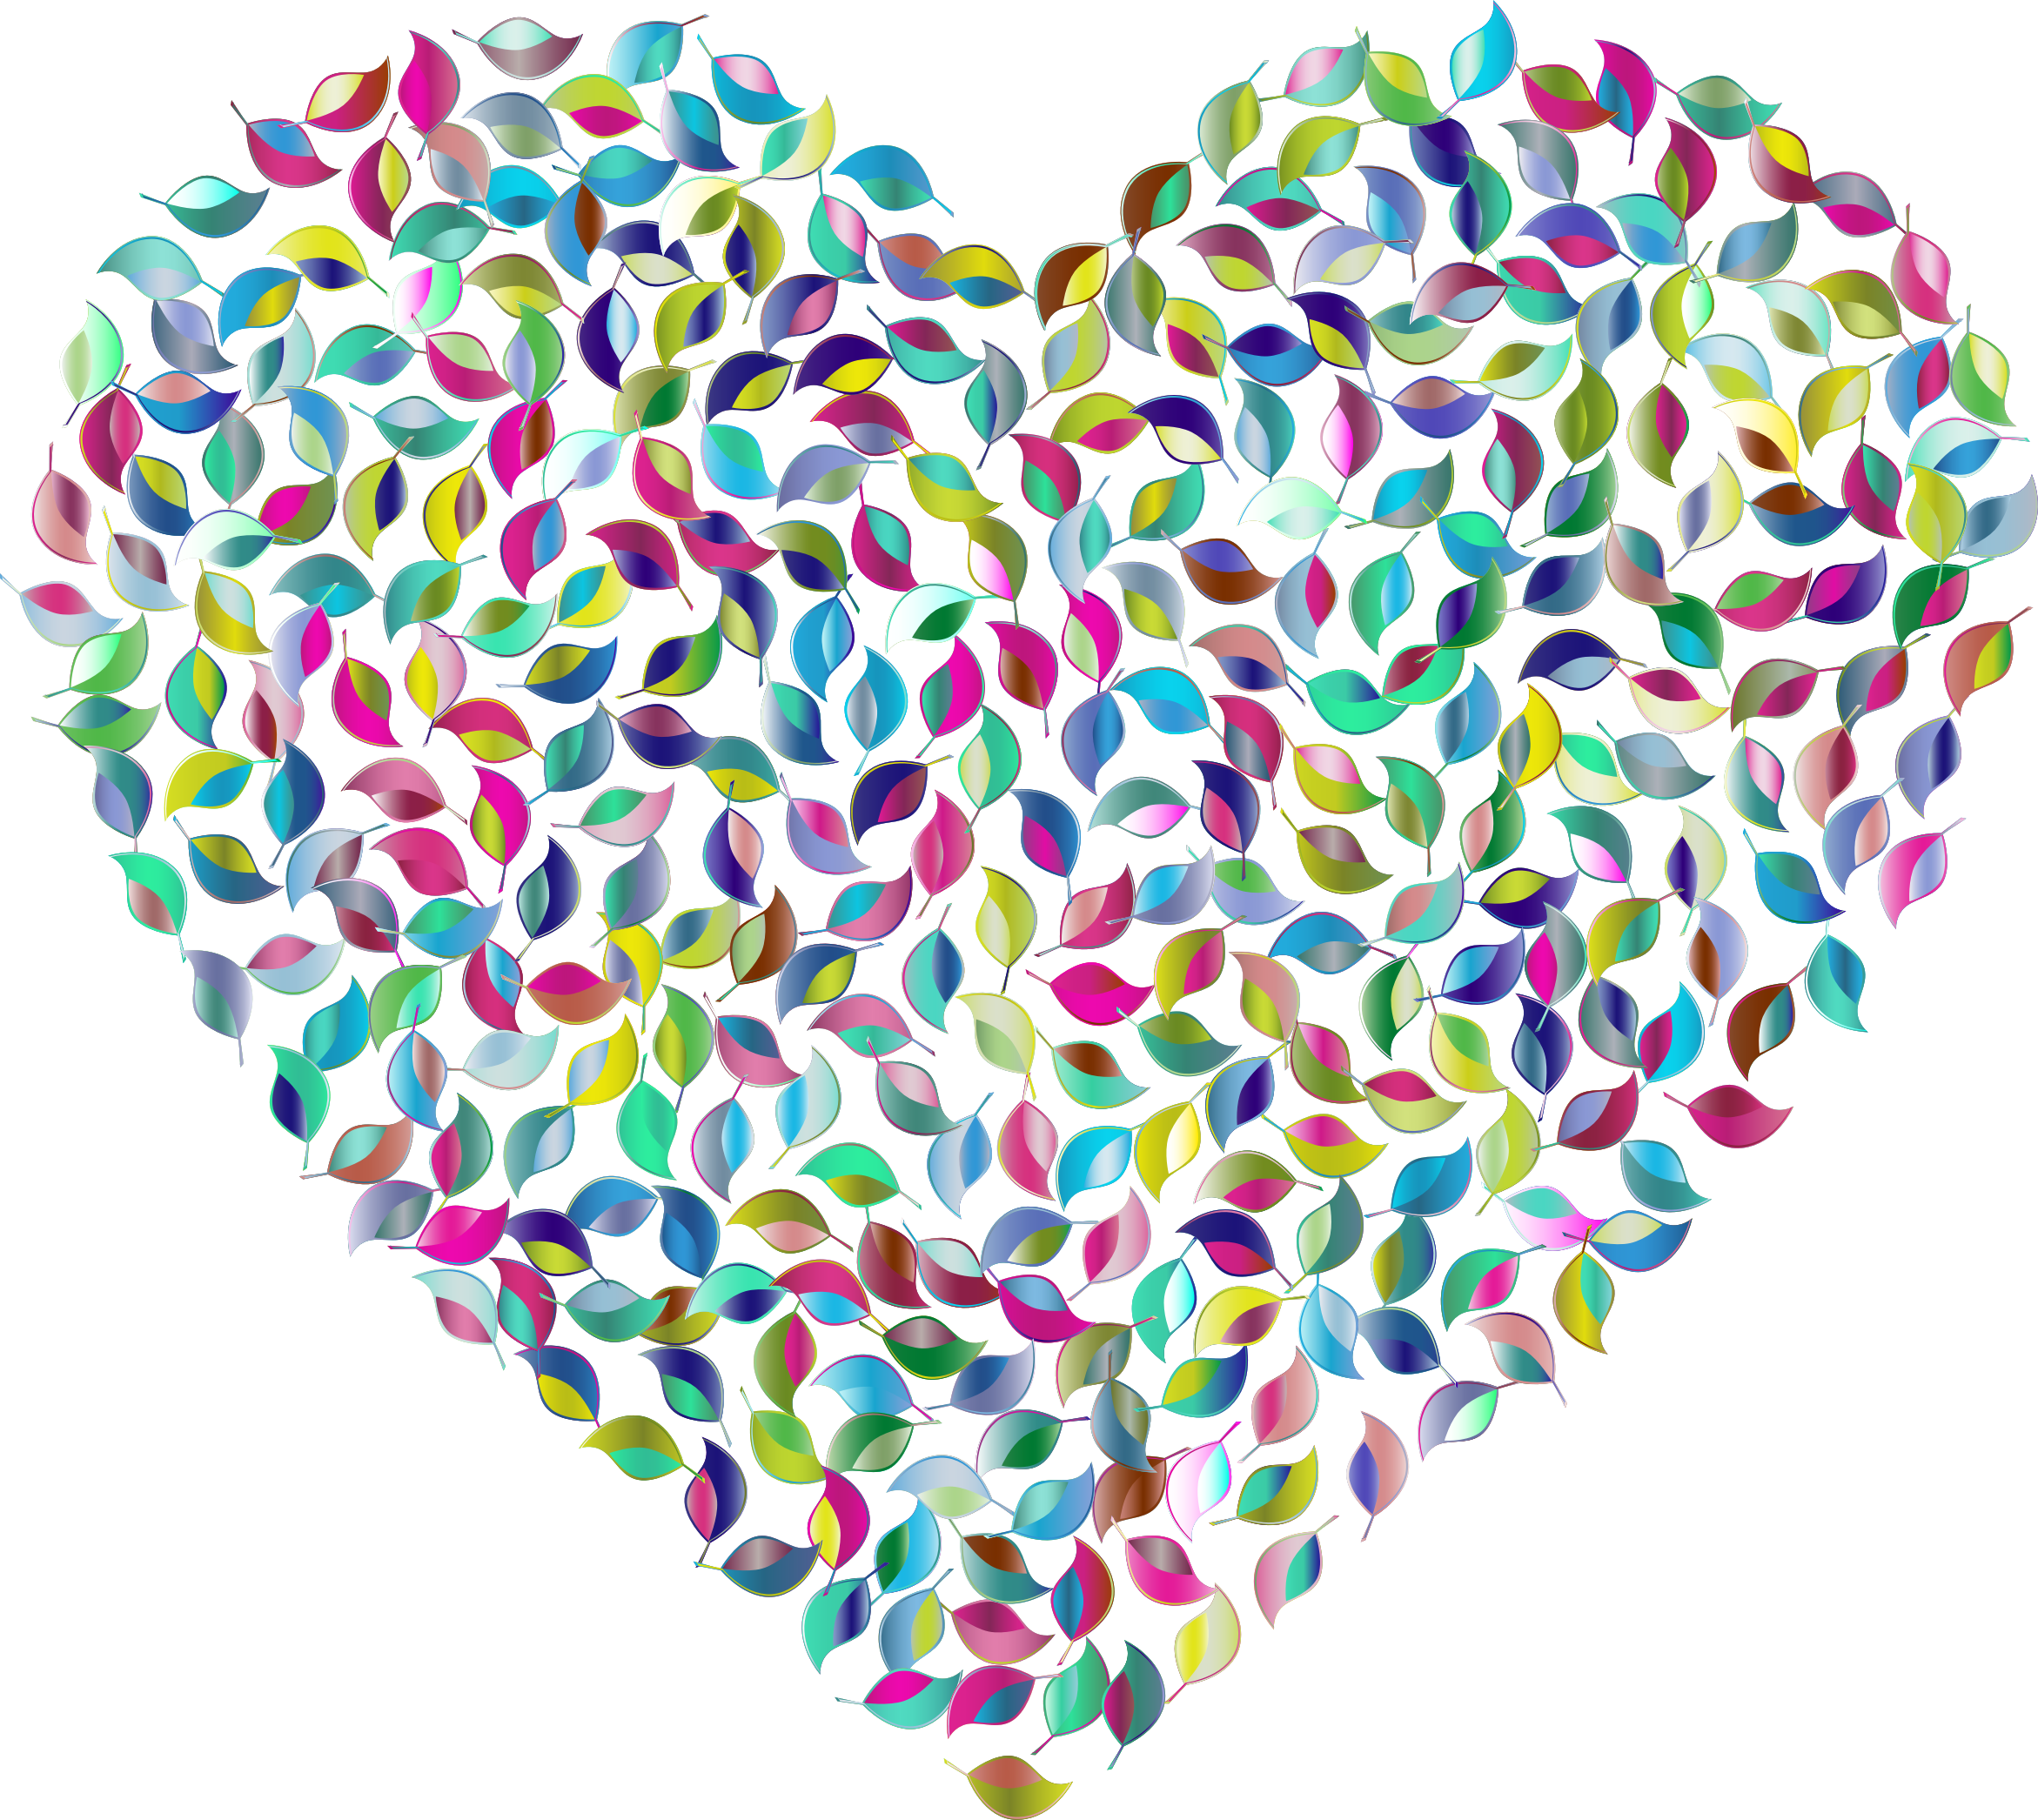 Old heart clipart picture royalty free stock Clipart - Prismatic Green Heart 3 No Background picture royalty free stock